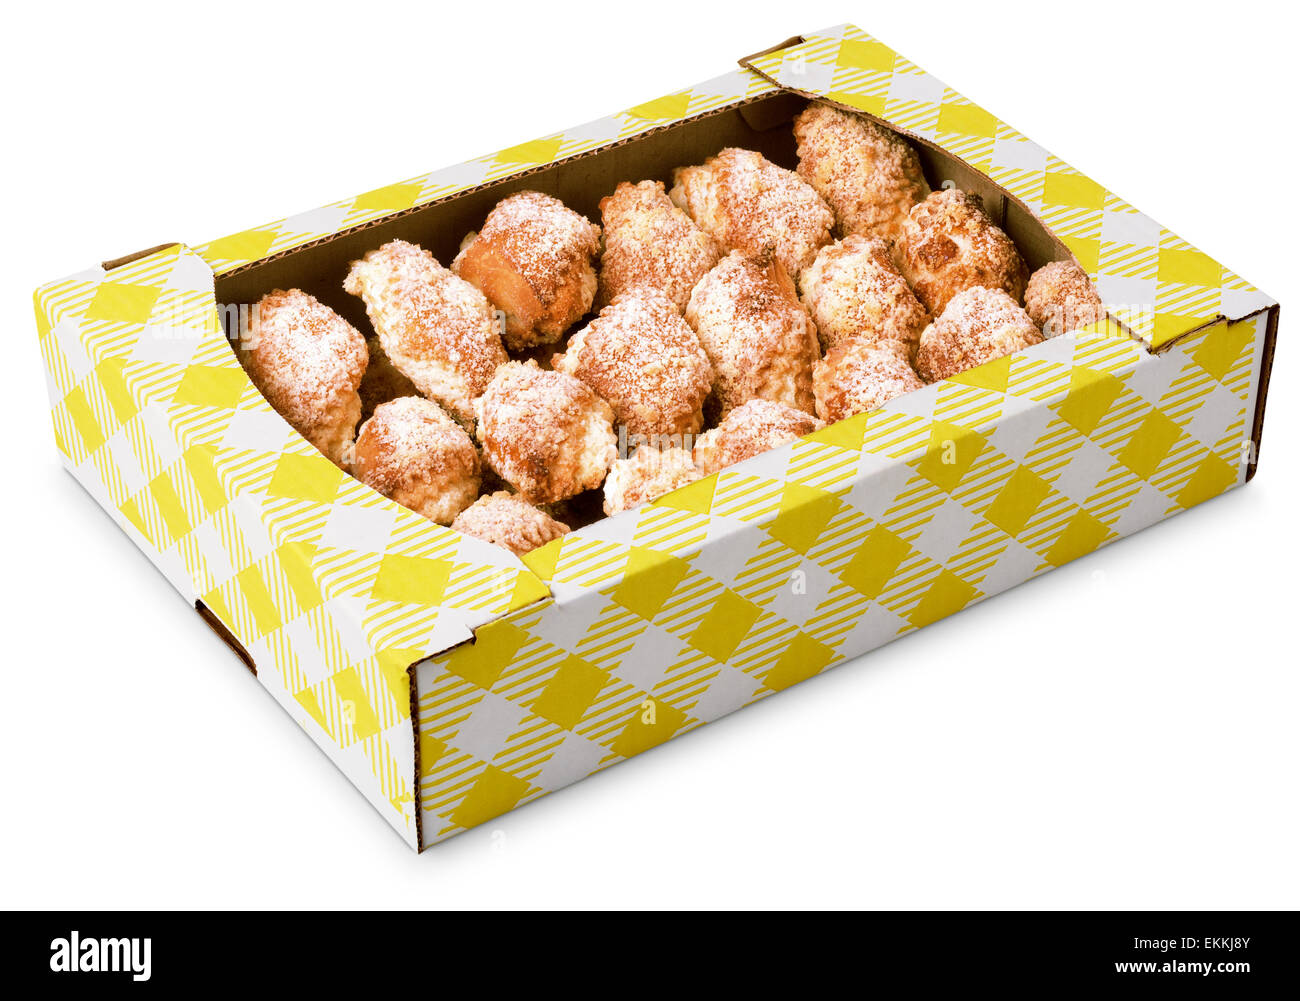 pile of cookies in a cardboard box isolated on white background - Stock Image